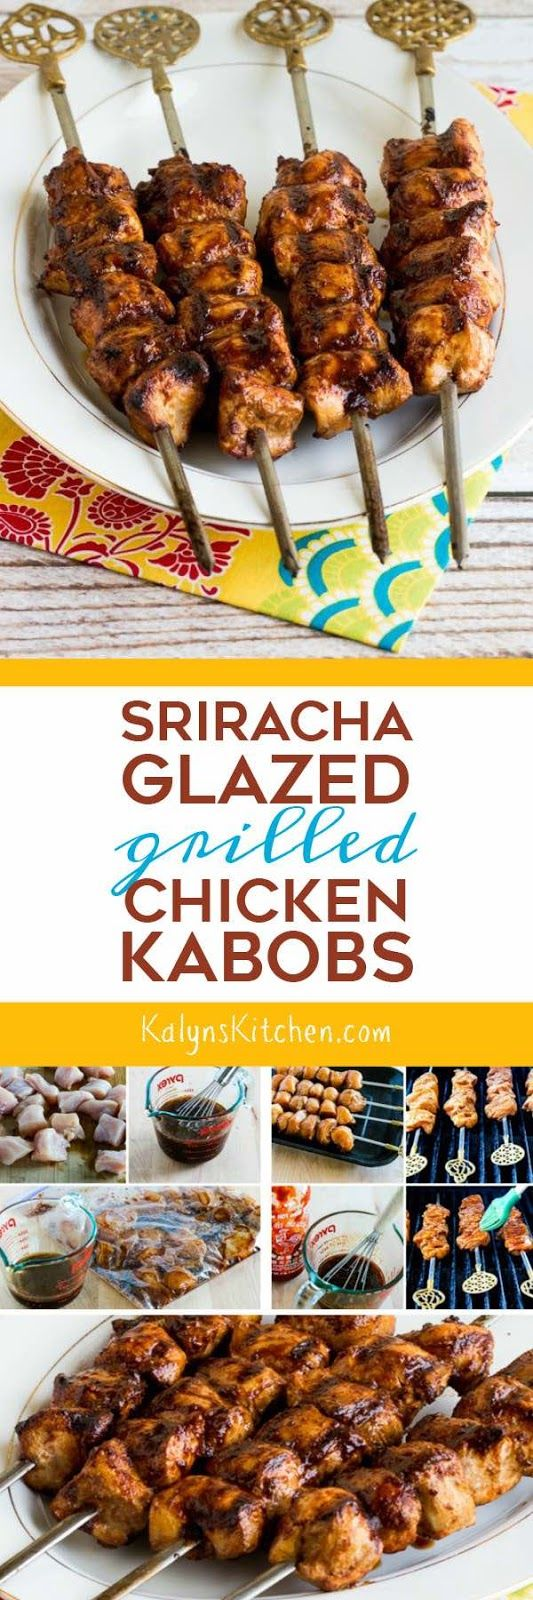 How long do i grill chicken kabobs - Sriracha Glazed Grilled Chicken Kabobs